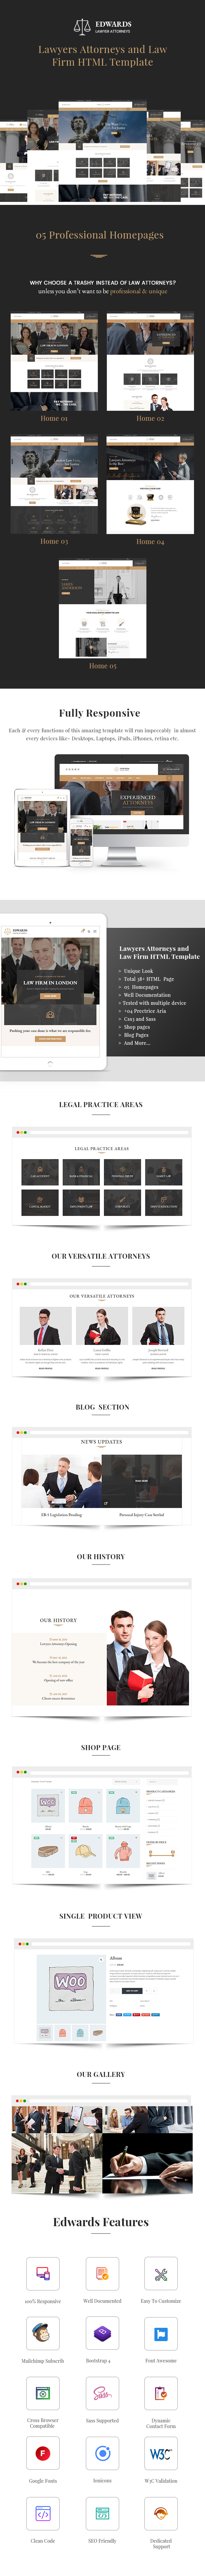 Edwards - Law Firm HTML Template - 1